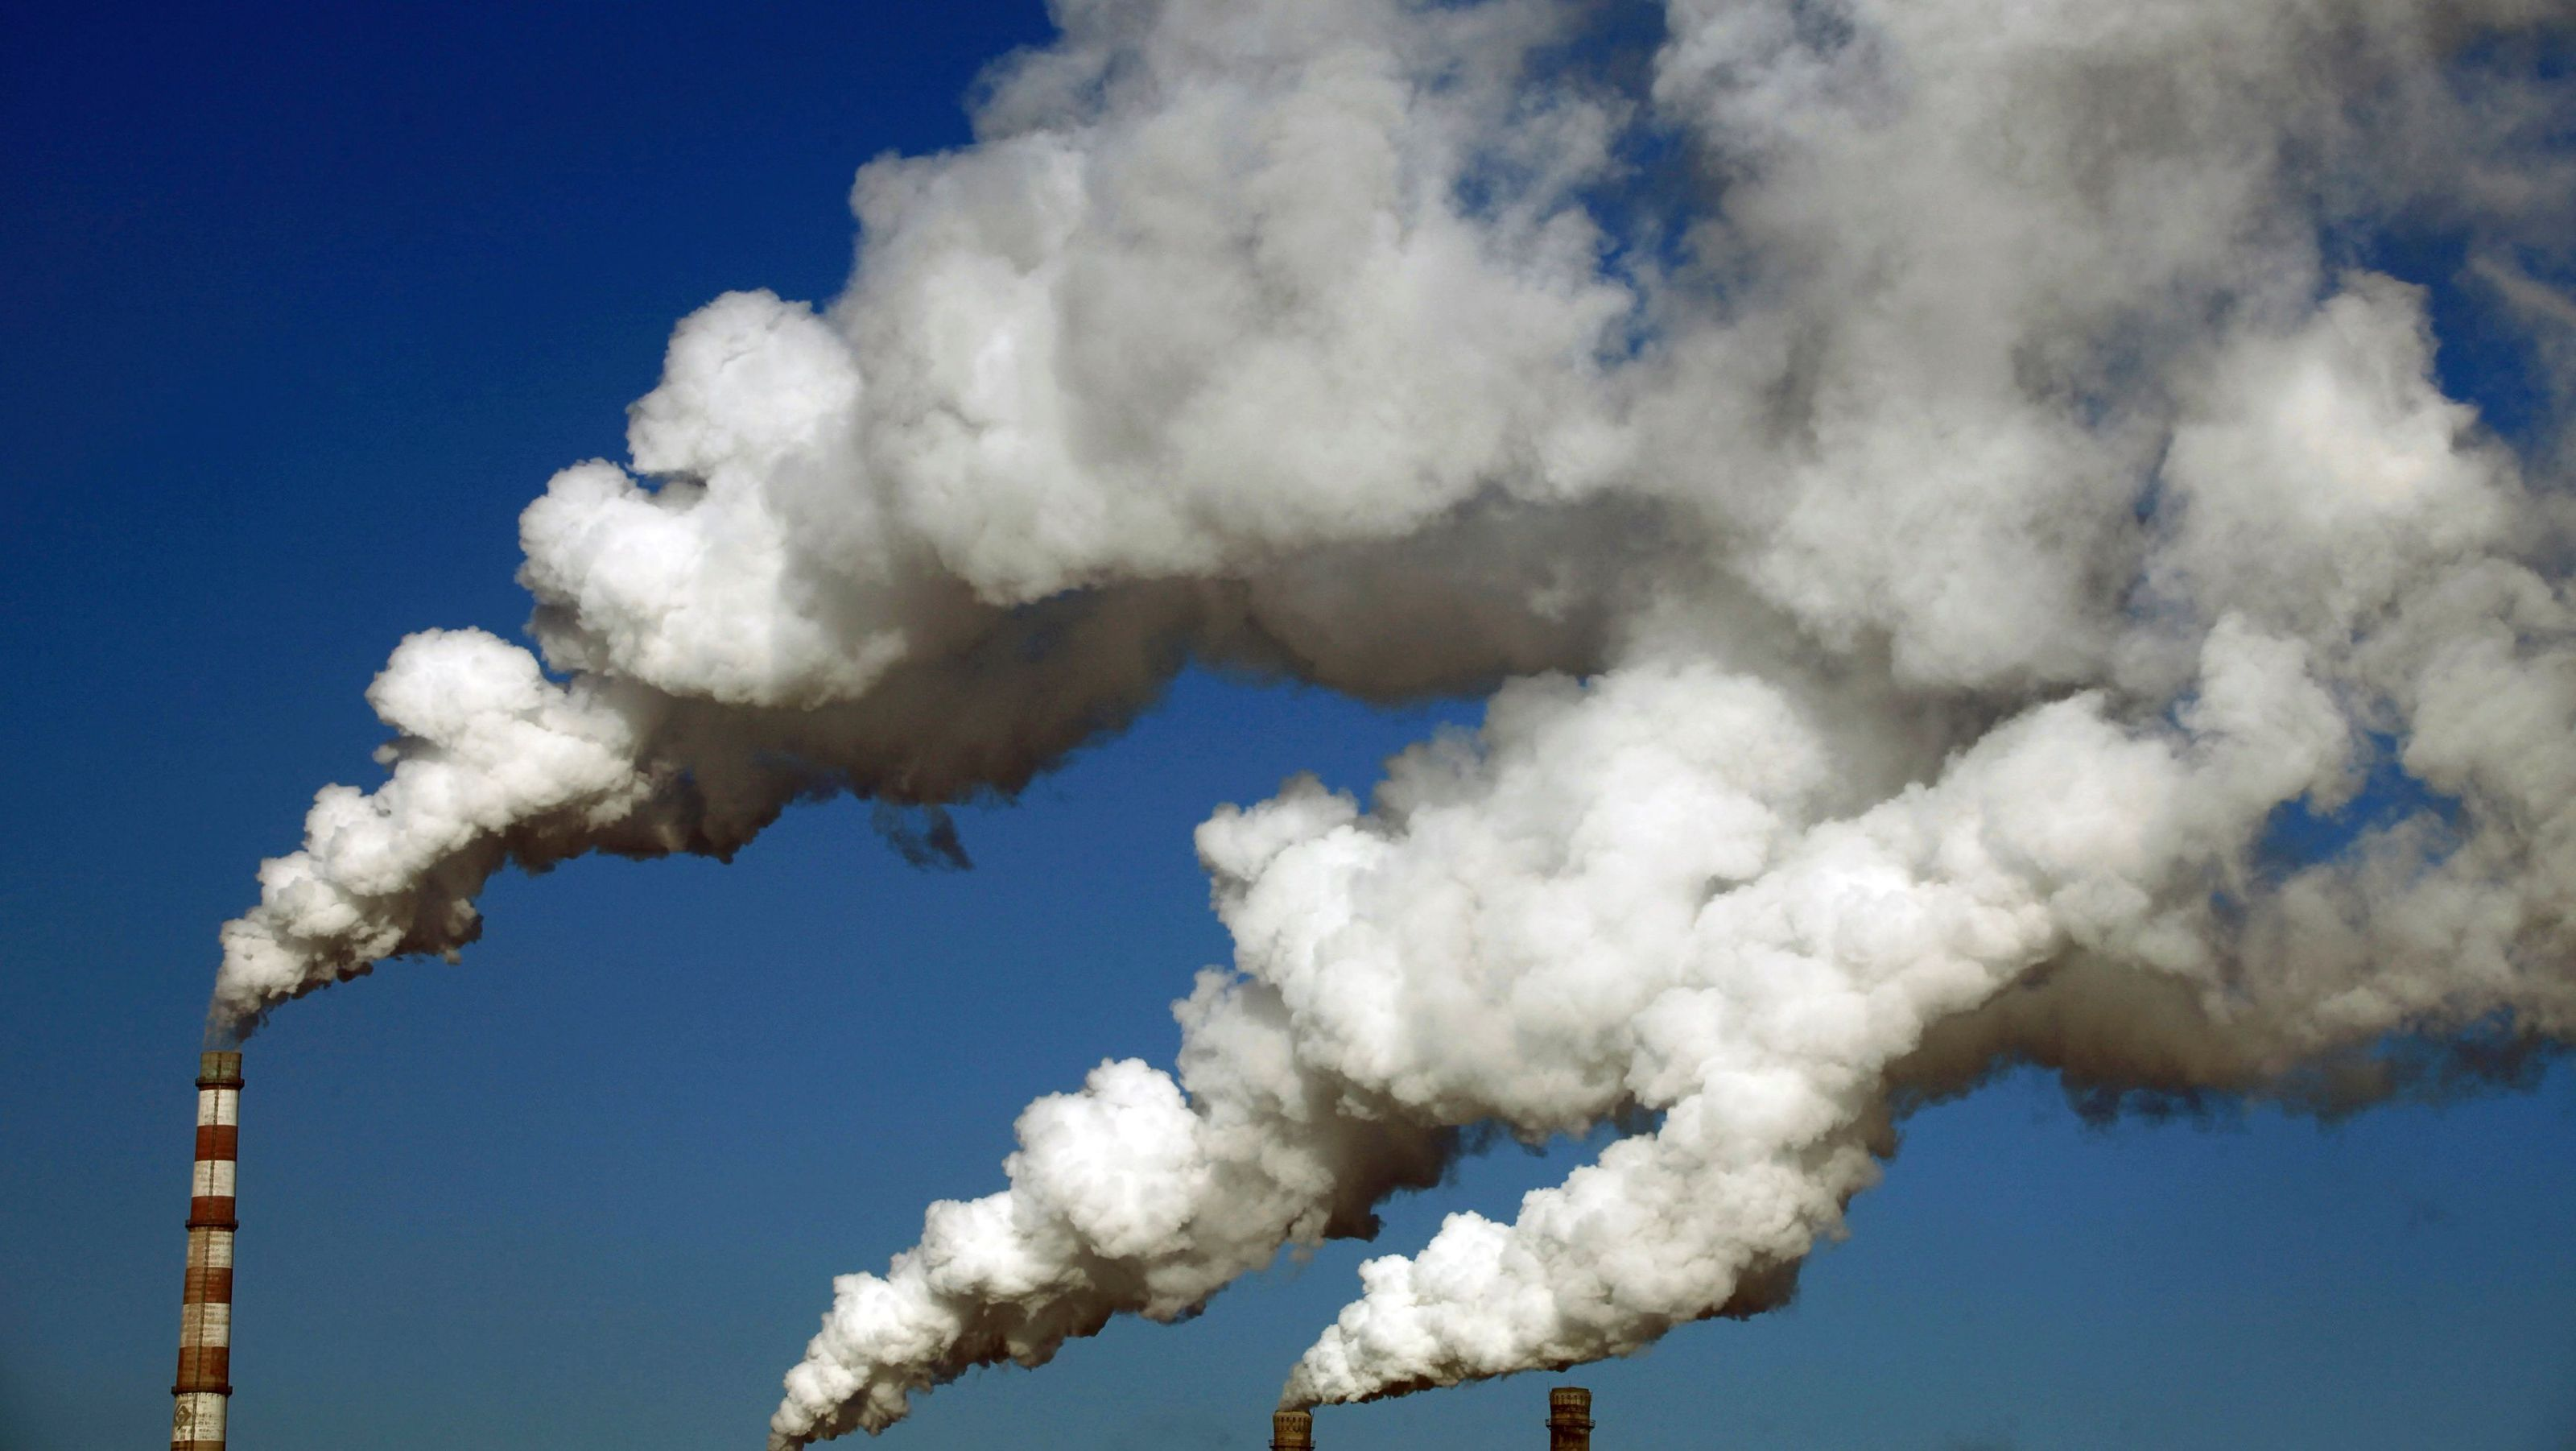 Smoke Billows From The Chimneys Of A Heating Plant In Jilin Jilin